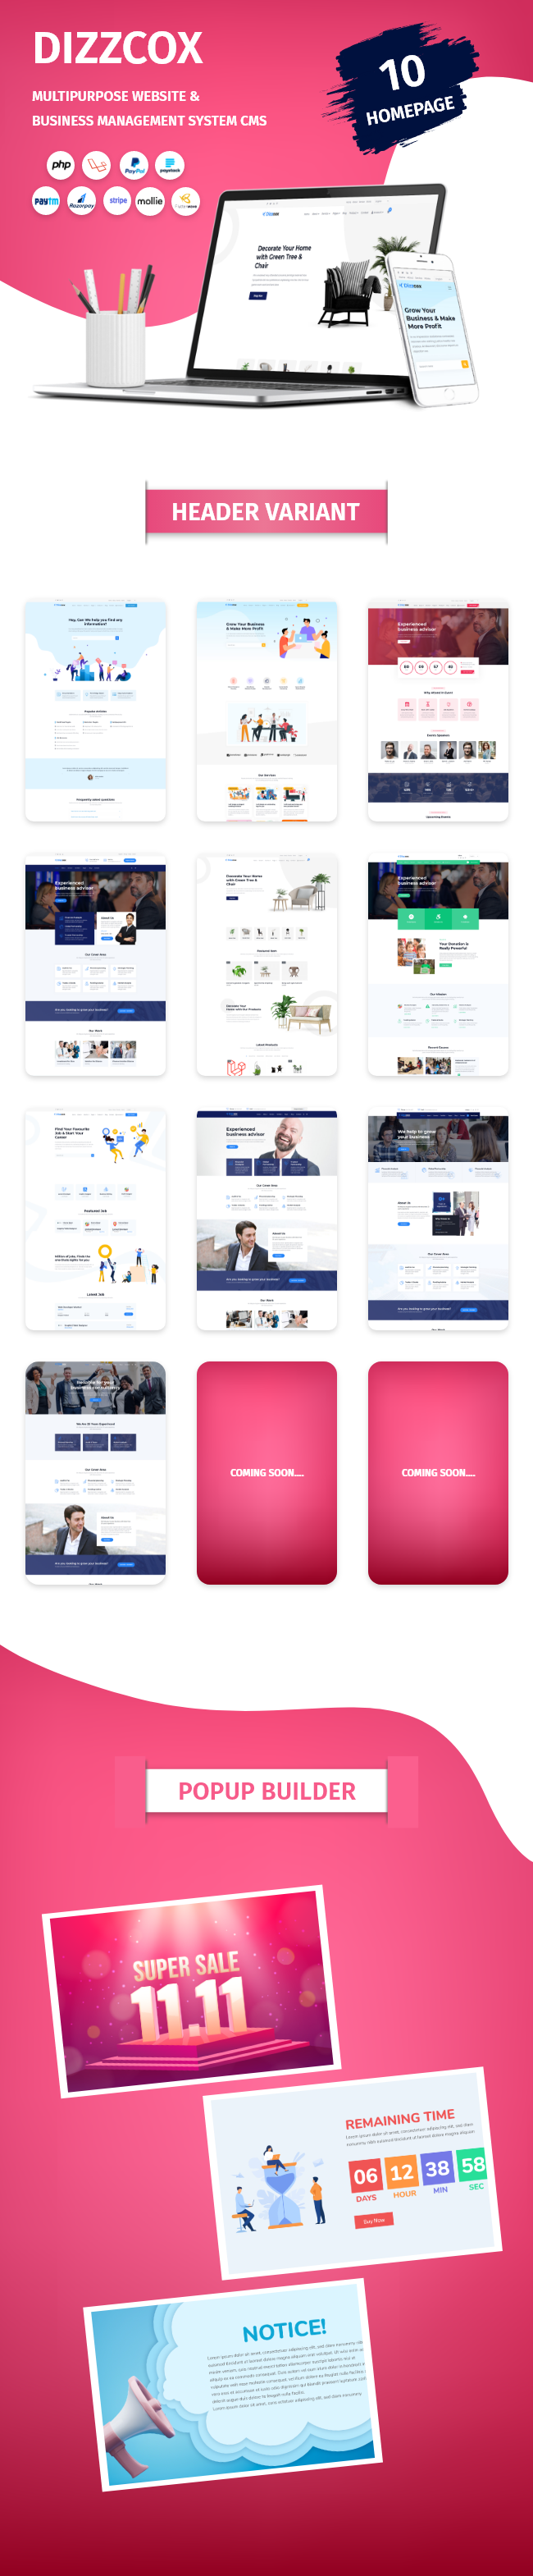 nexelit multipurpose website cms & business management system